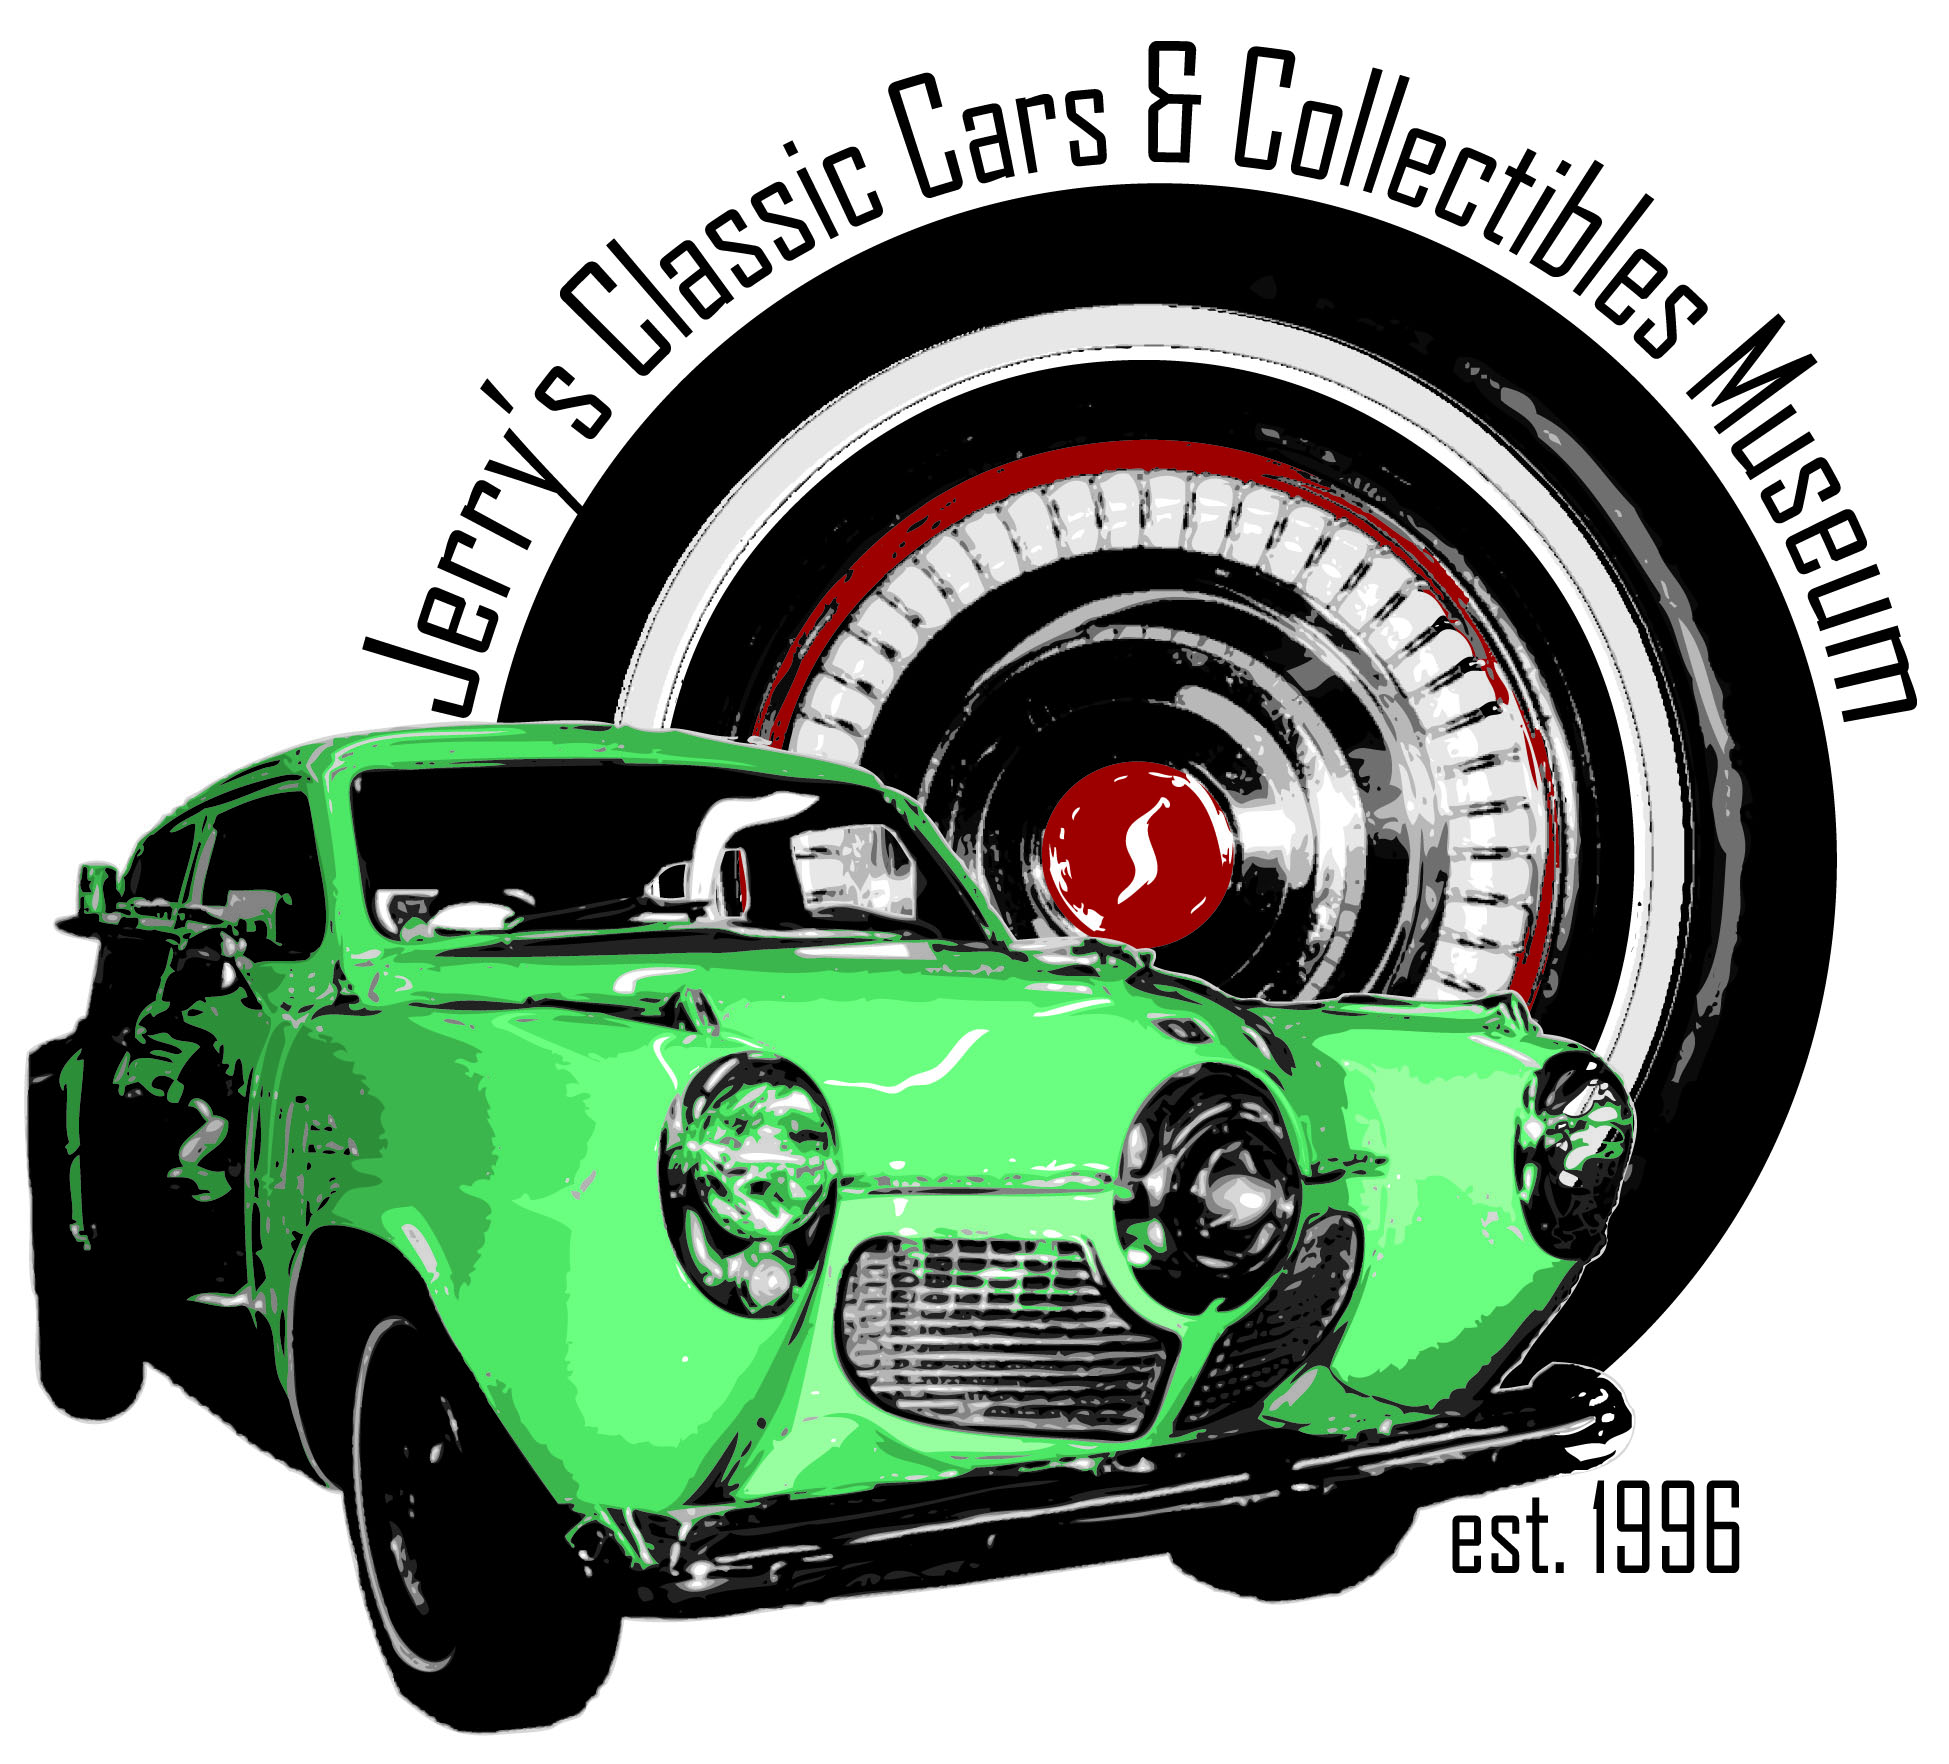 Jerry''s Classic Cars and Collectibles Museum Photo